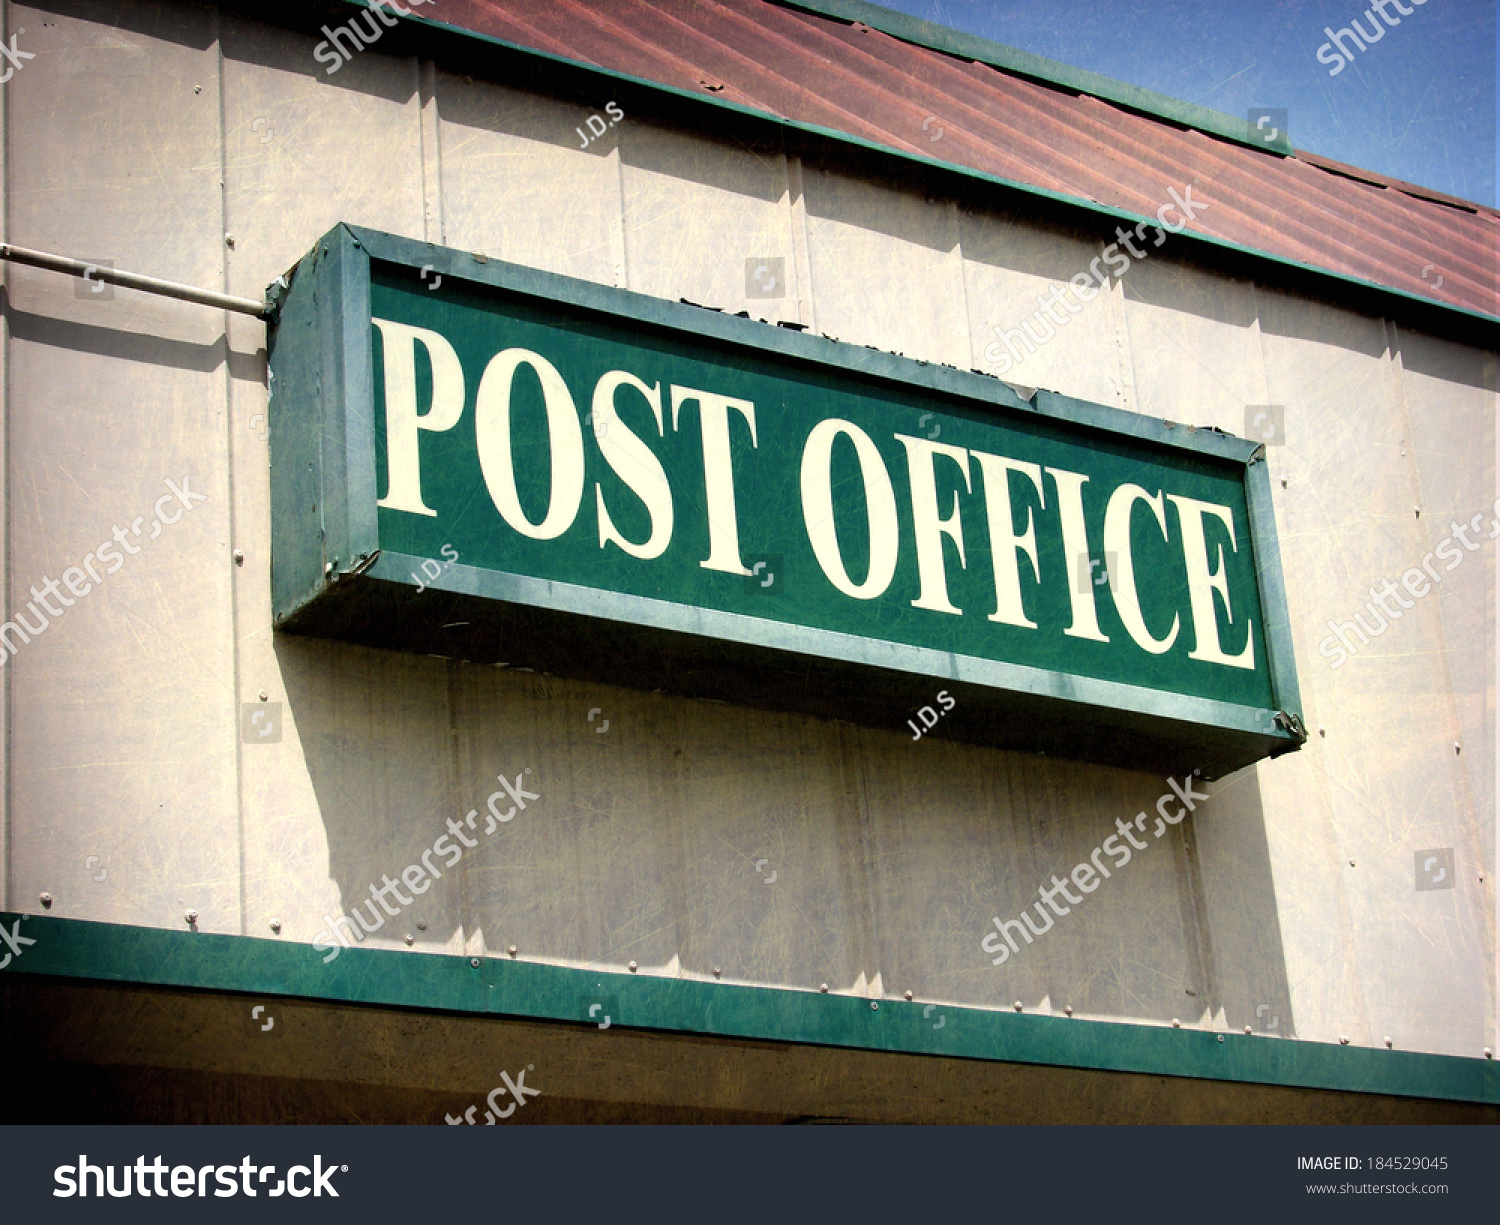 Aged And Worn Vintage Photo Of Post Office Sign